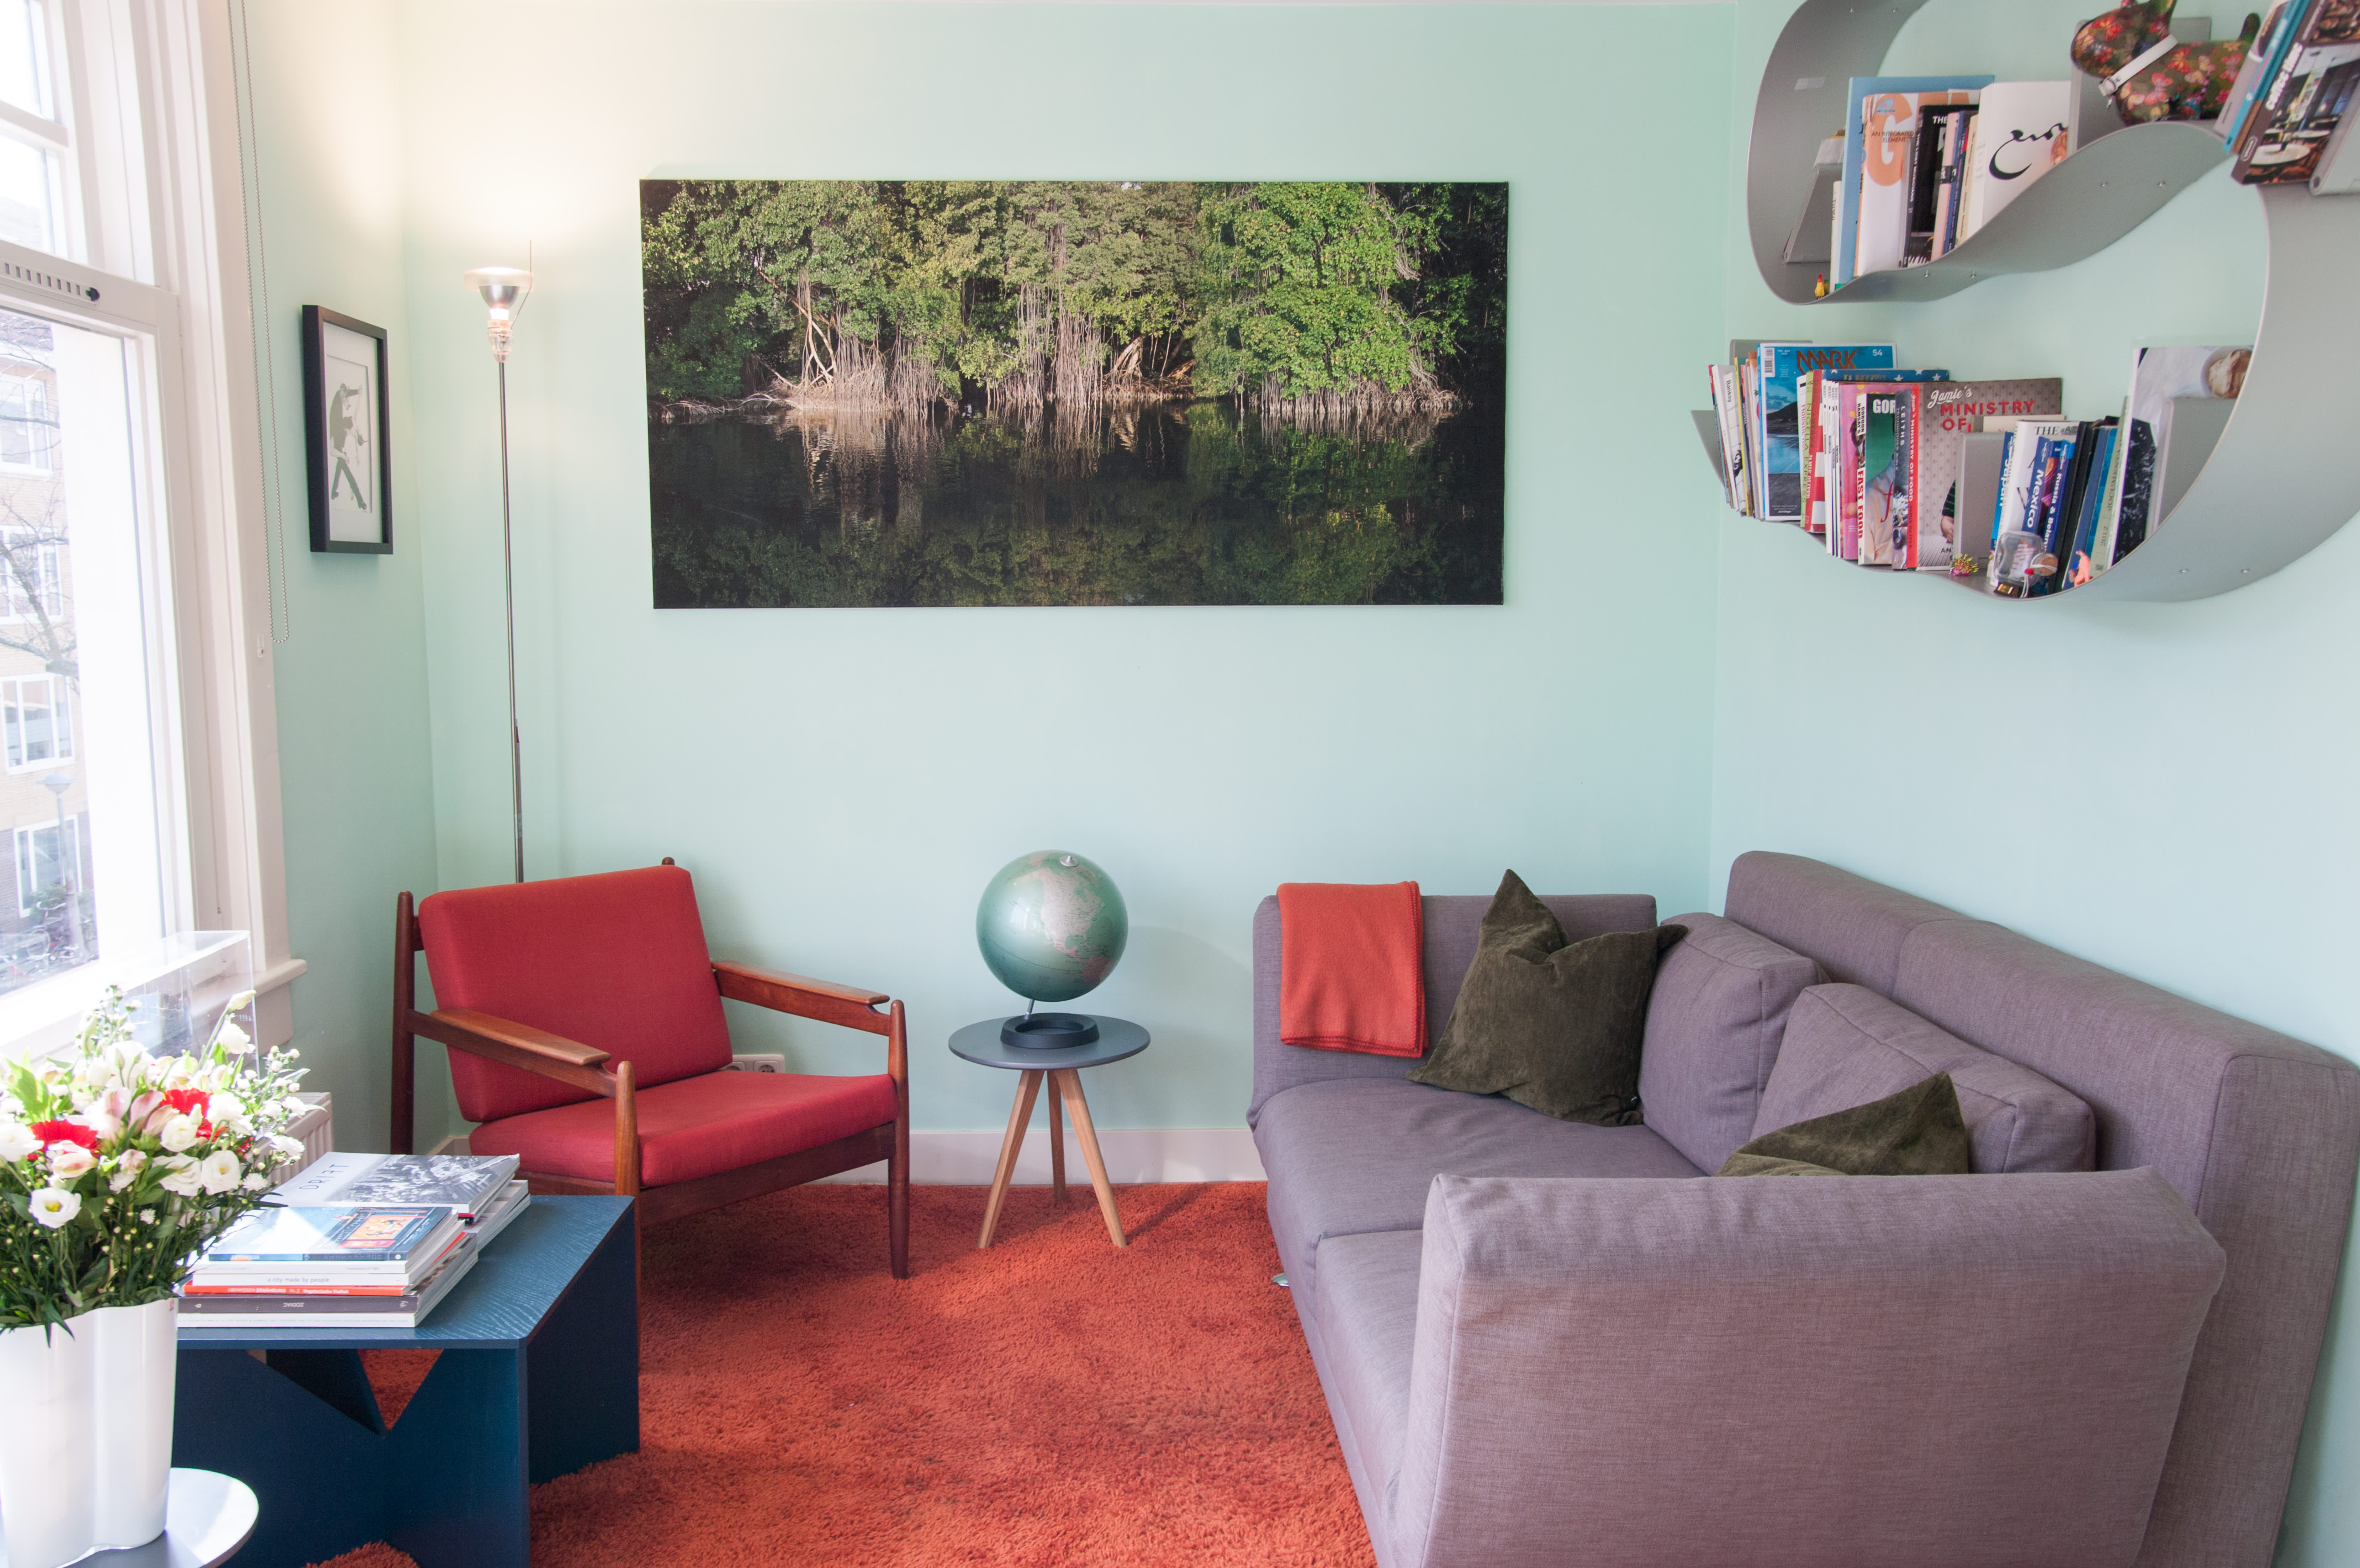 House Tour A Mexican Folklore Inspired Amsterdam Home Apartment Therapy